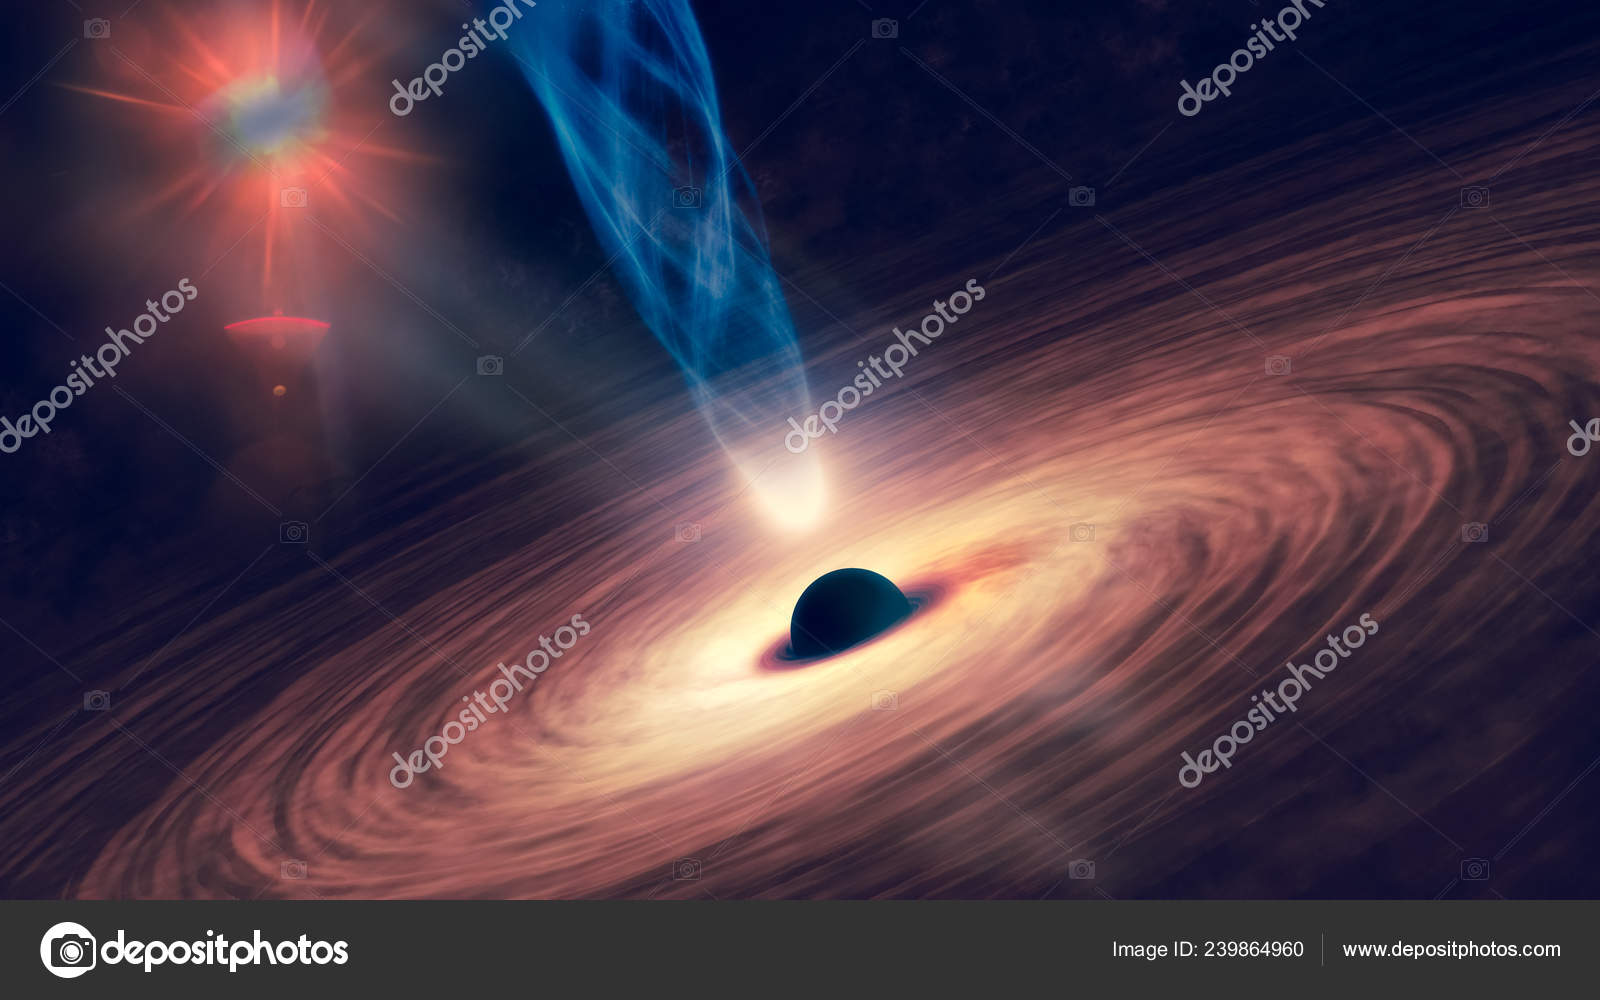 Black And White Outer Space Wallpaper Abstract Space Wallpaper Black Hole Nebula Colorful Stars Cloud Fields Stock Photo C Elf 11 239864960